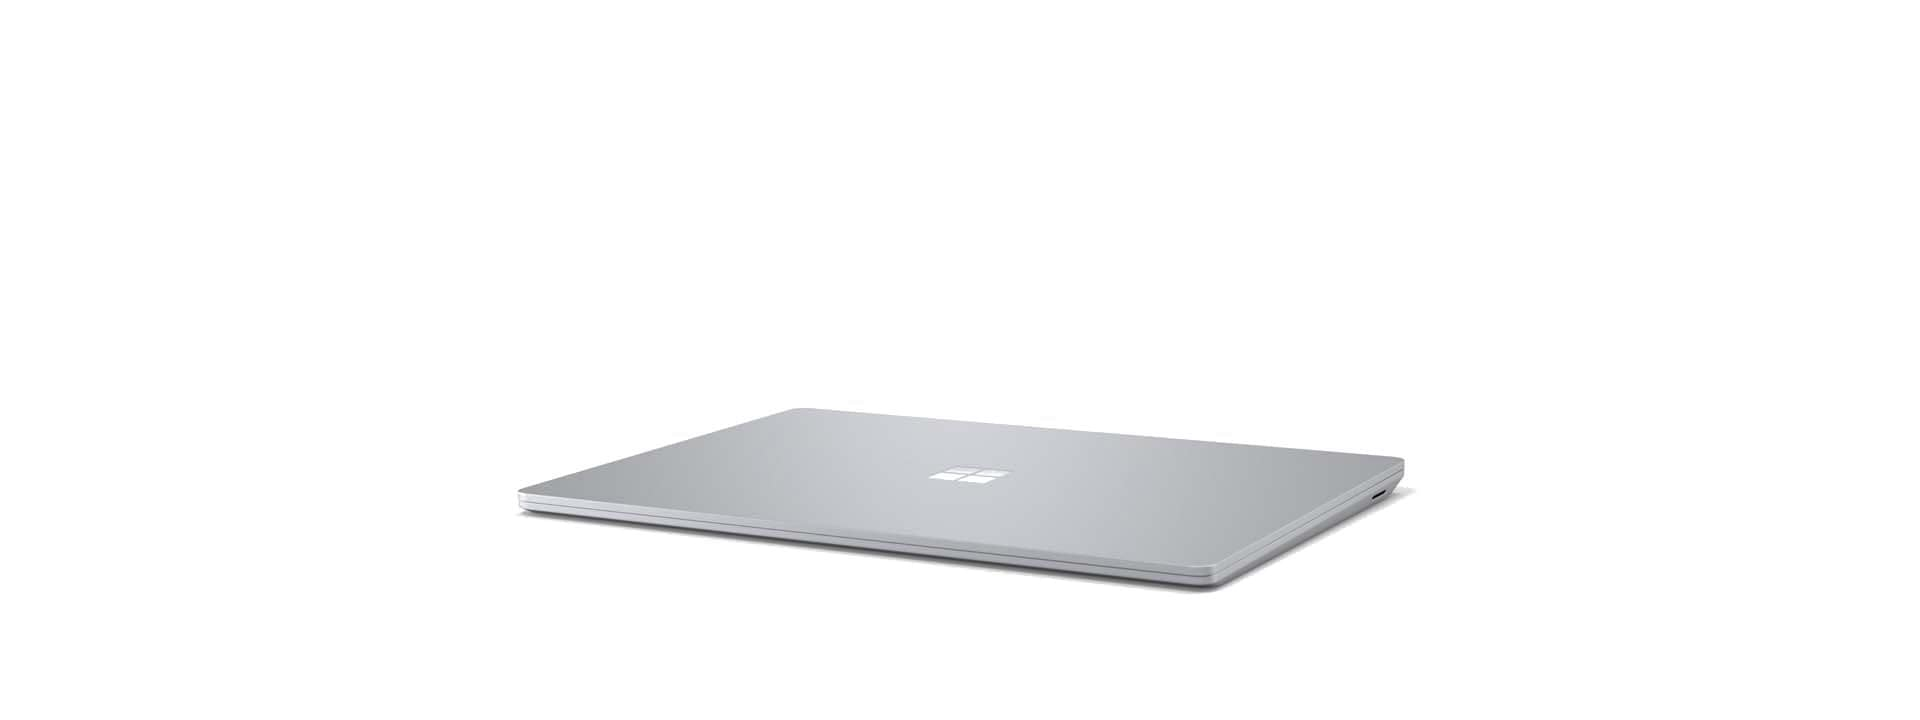 Surface Laptop 3 at an angle with screen closed